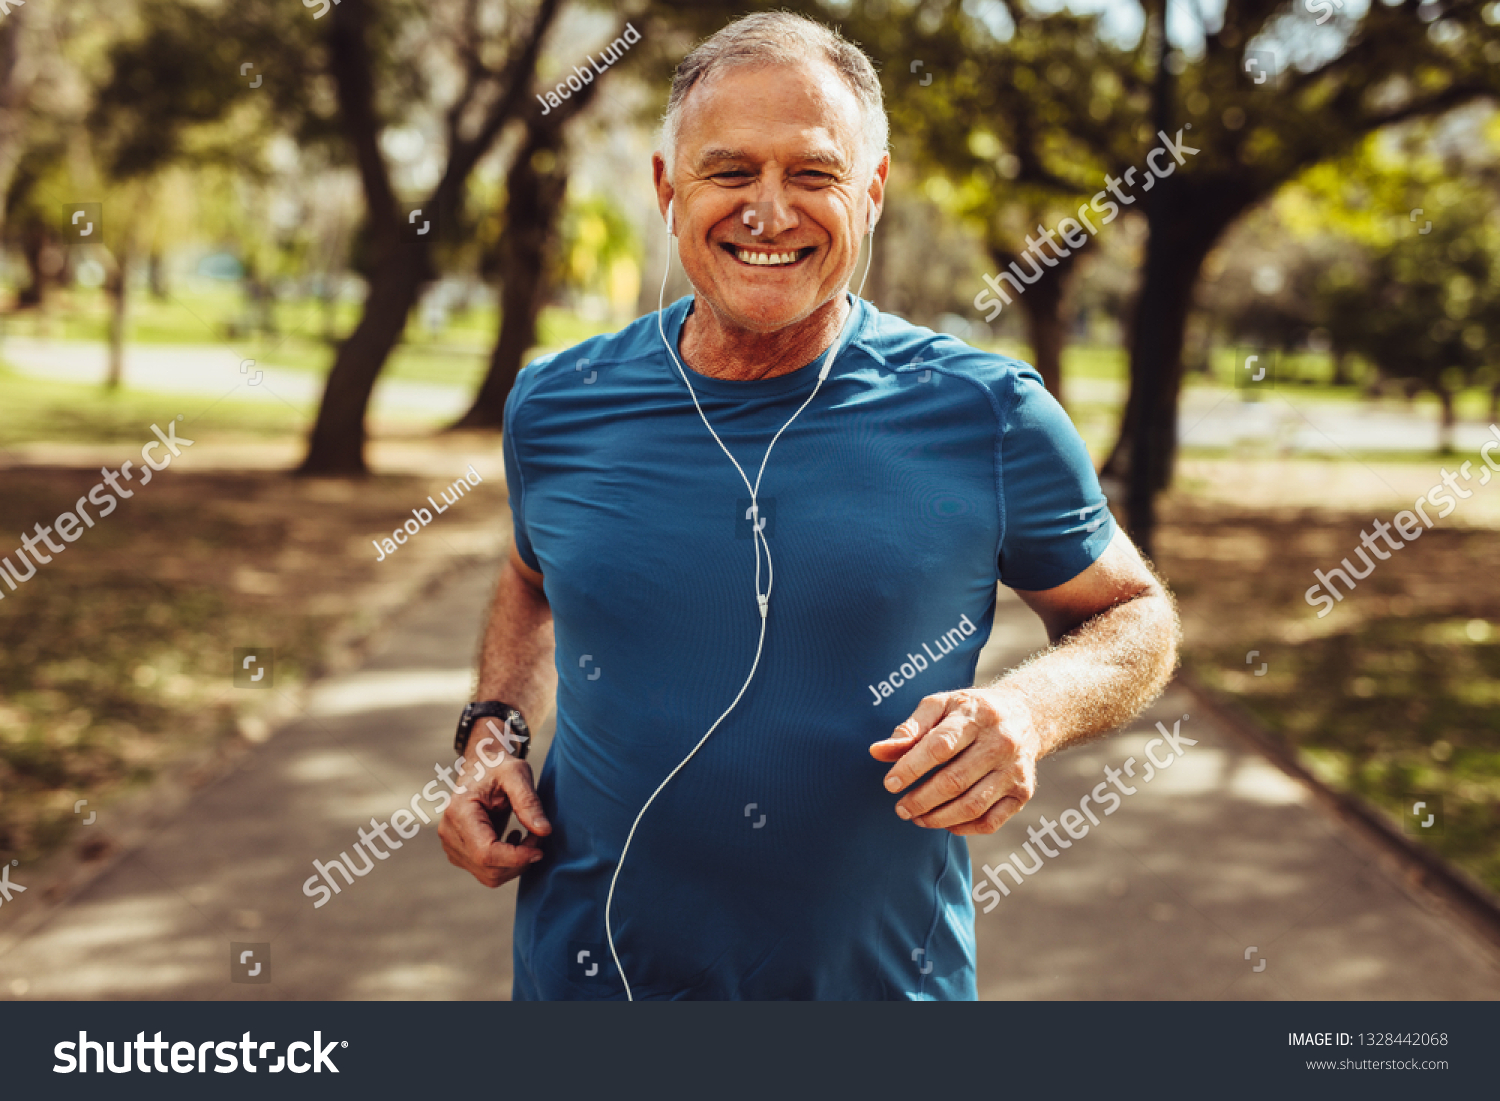 Portrait of a senior man in fitness wear running in a park. Close up of a smiling man running while listening to music using earphones. #1328442068